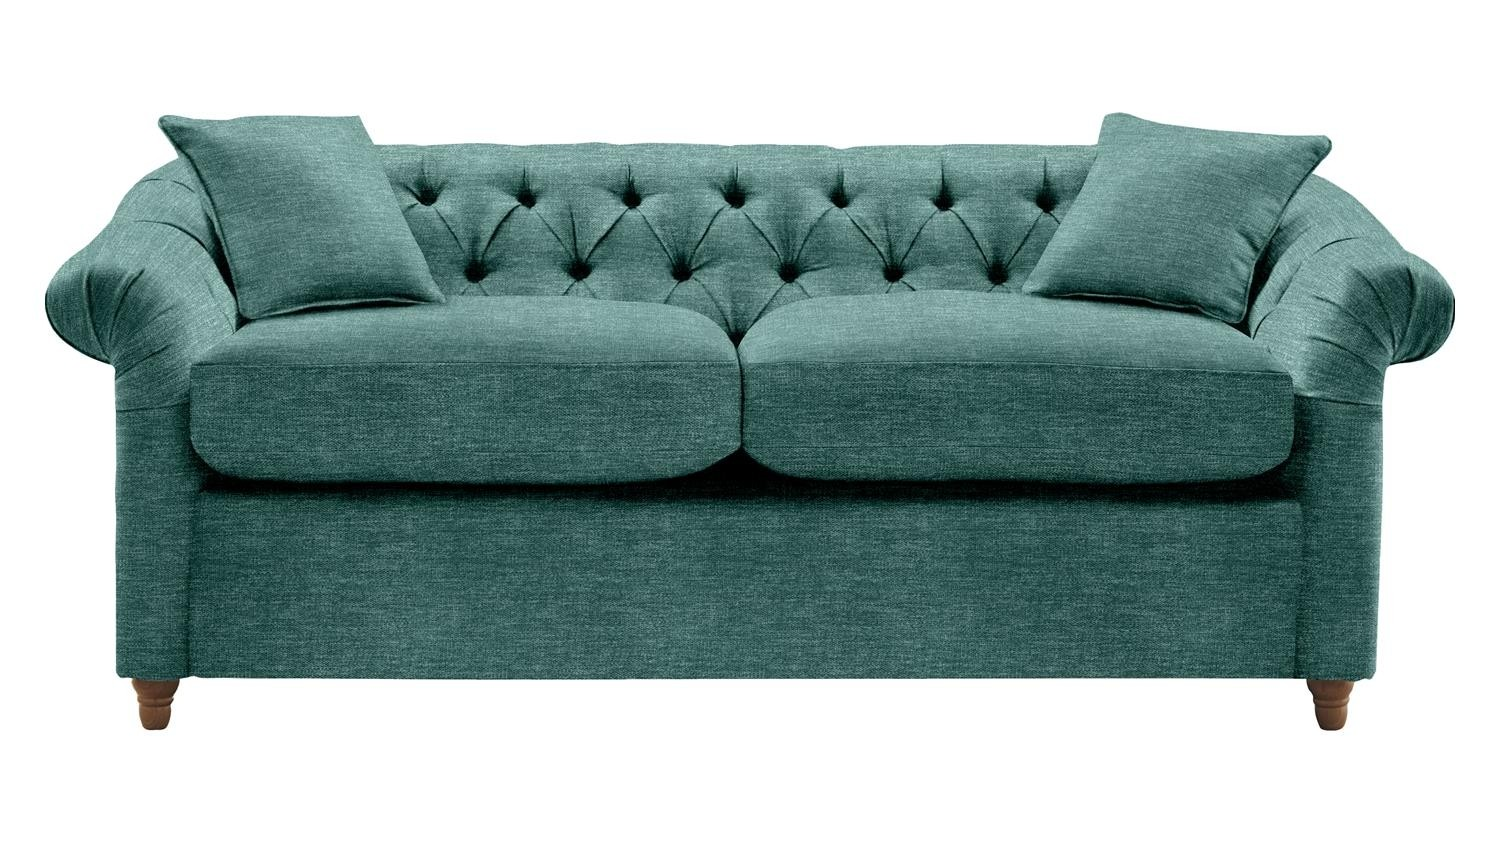 The Kittisford 3 Seater Sofa Bed